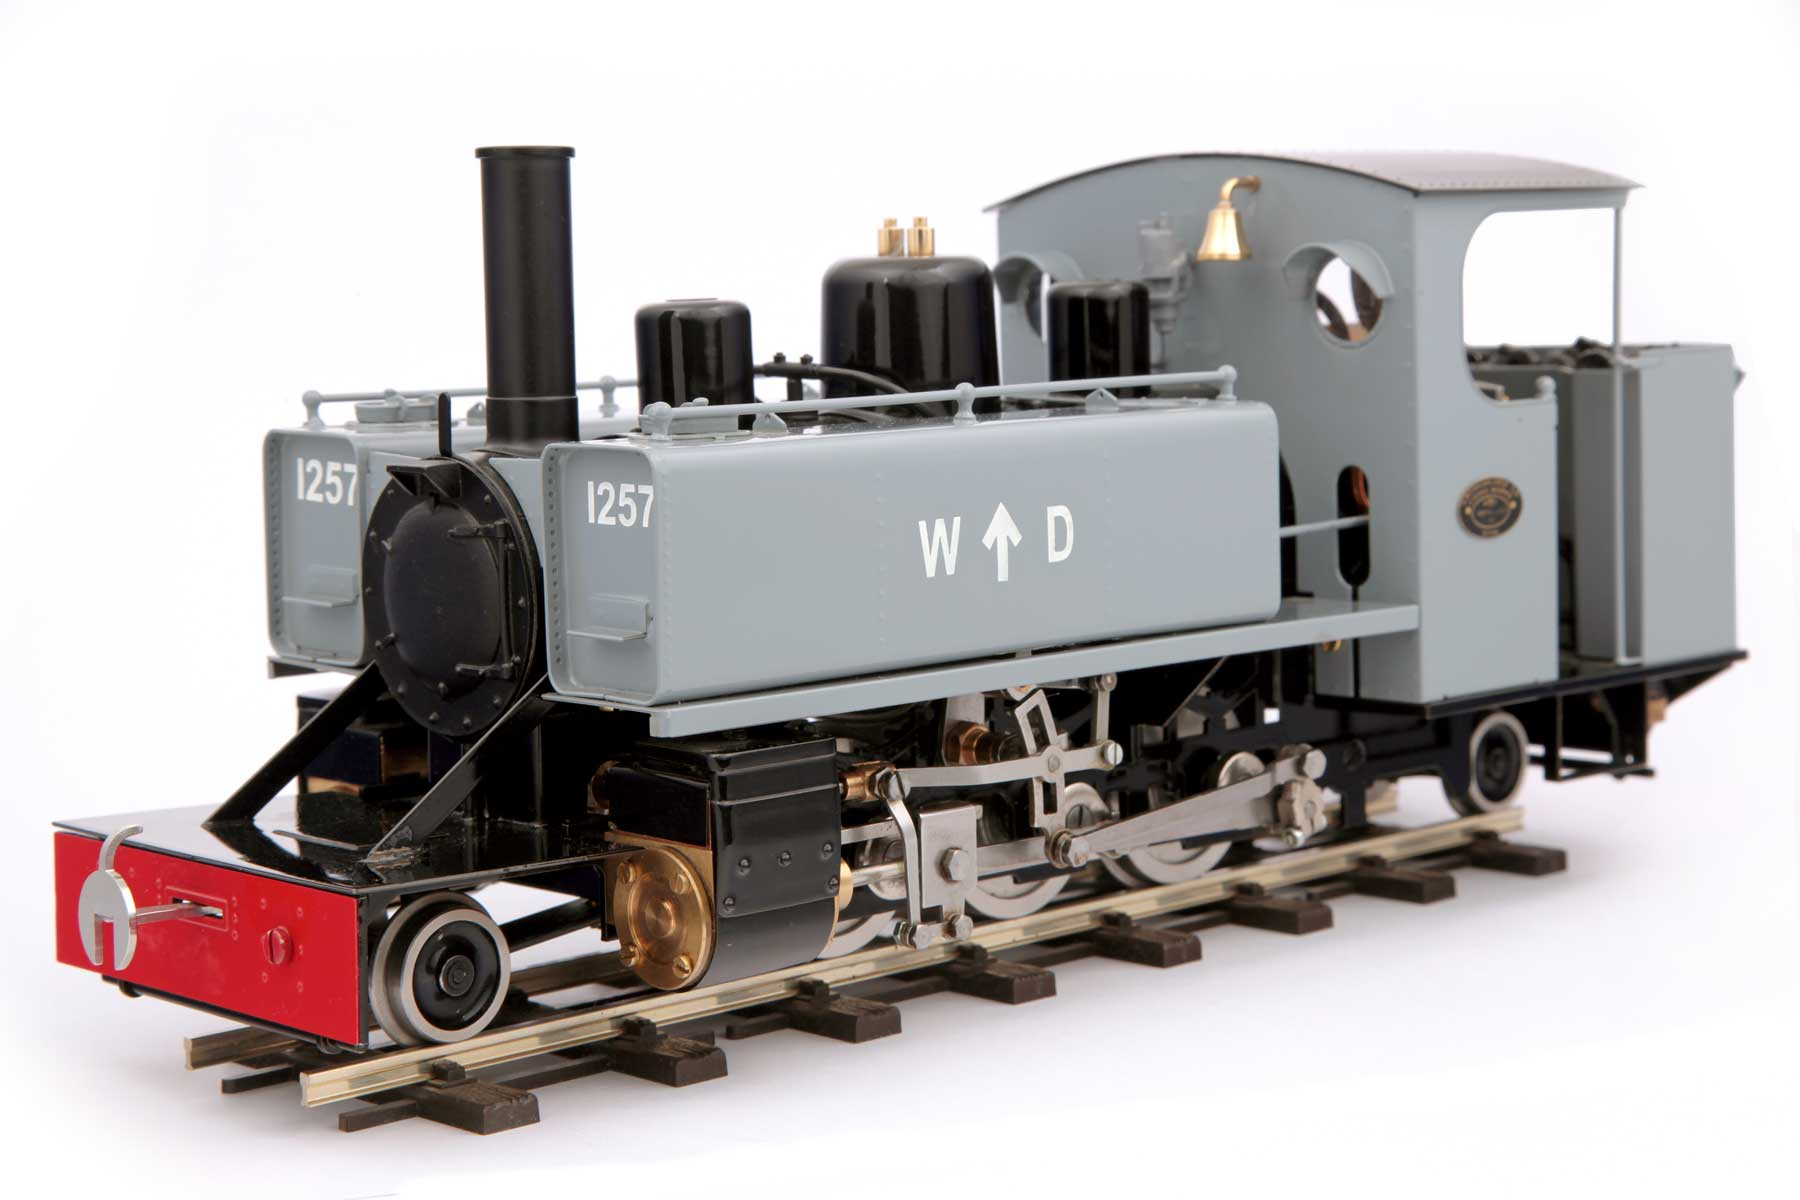 Shown here with optional 'WD' and '1257' markings